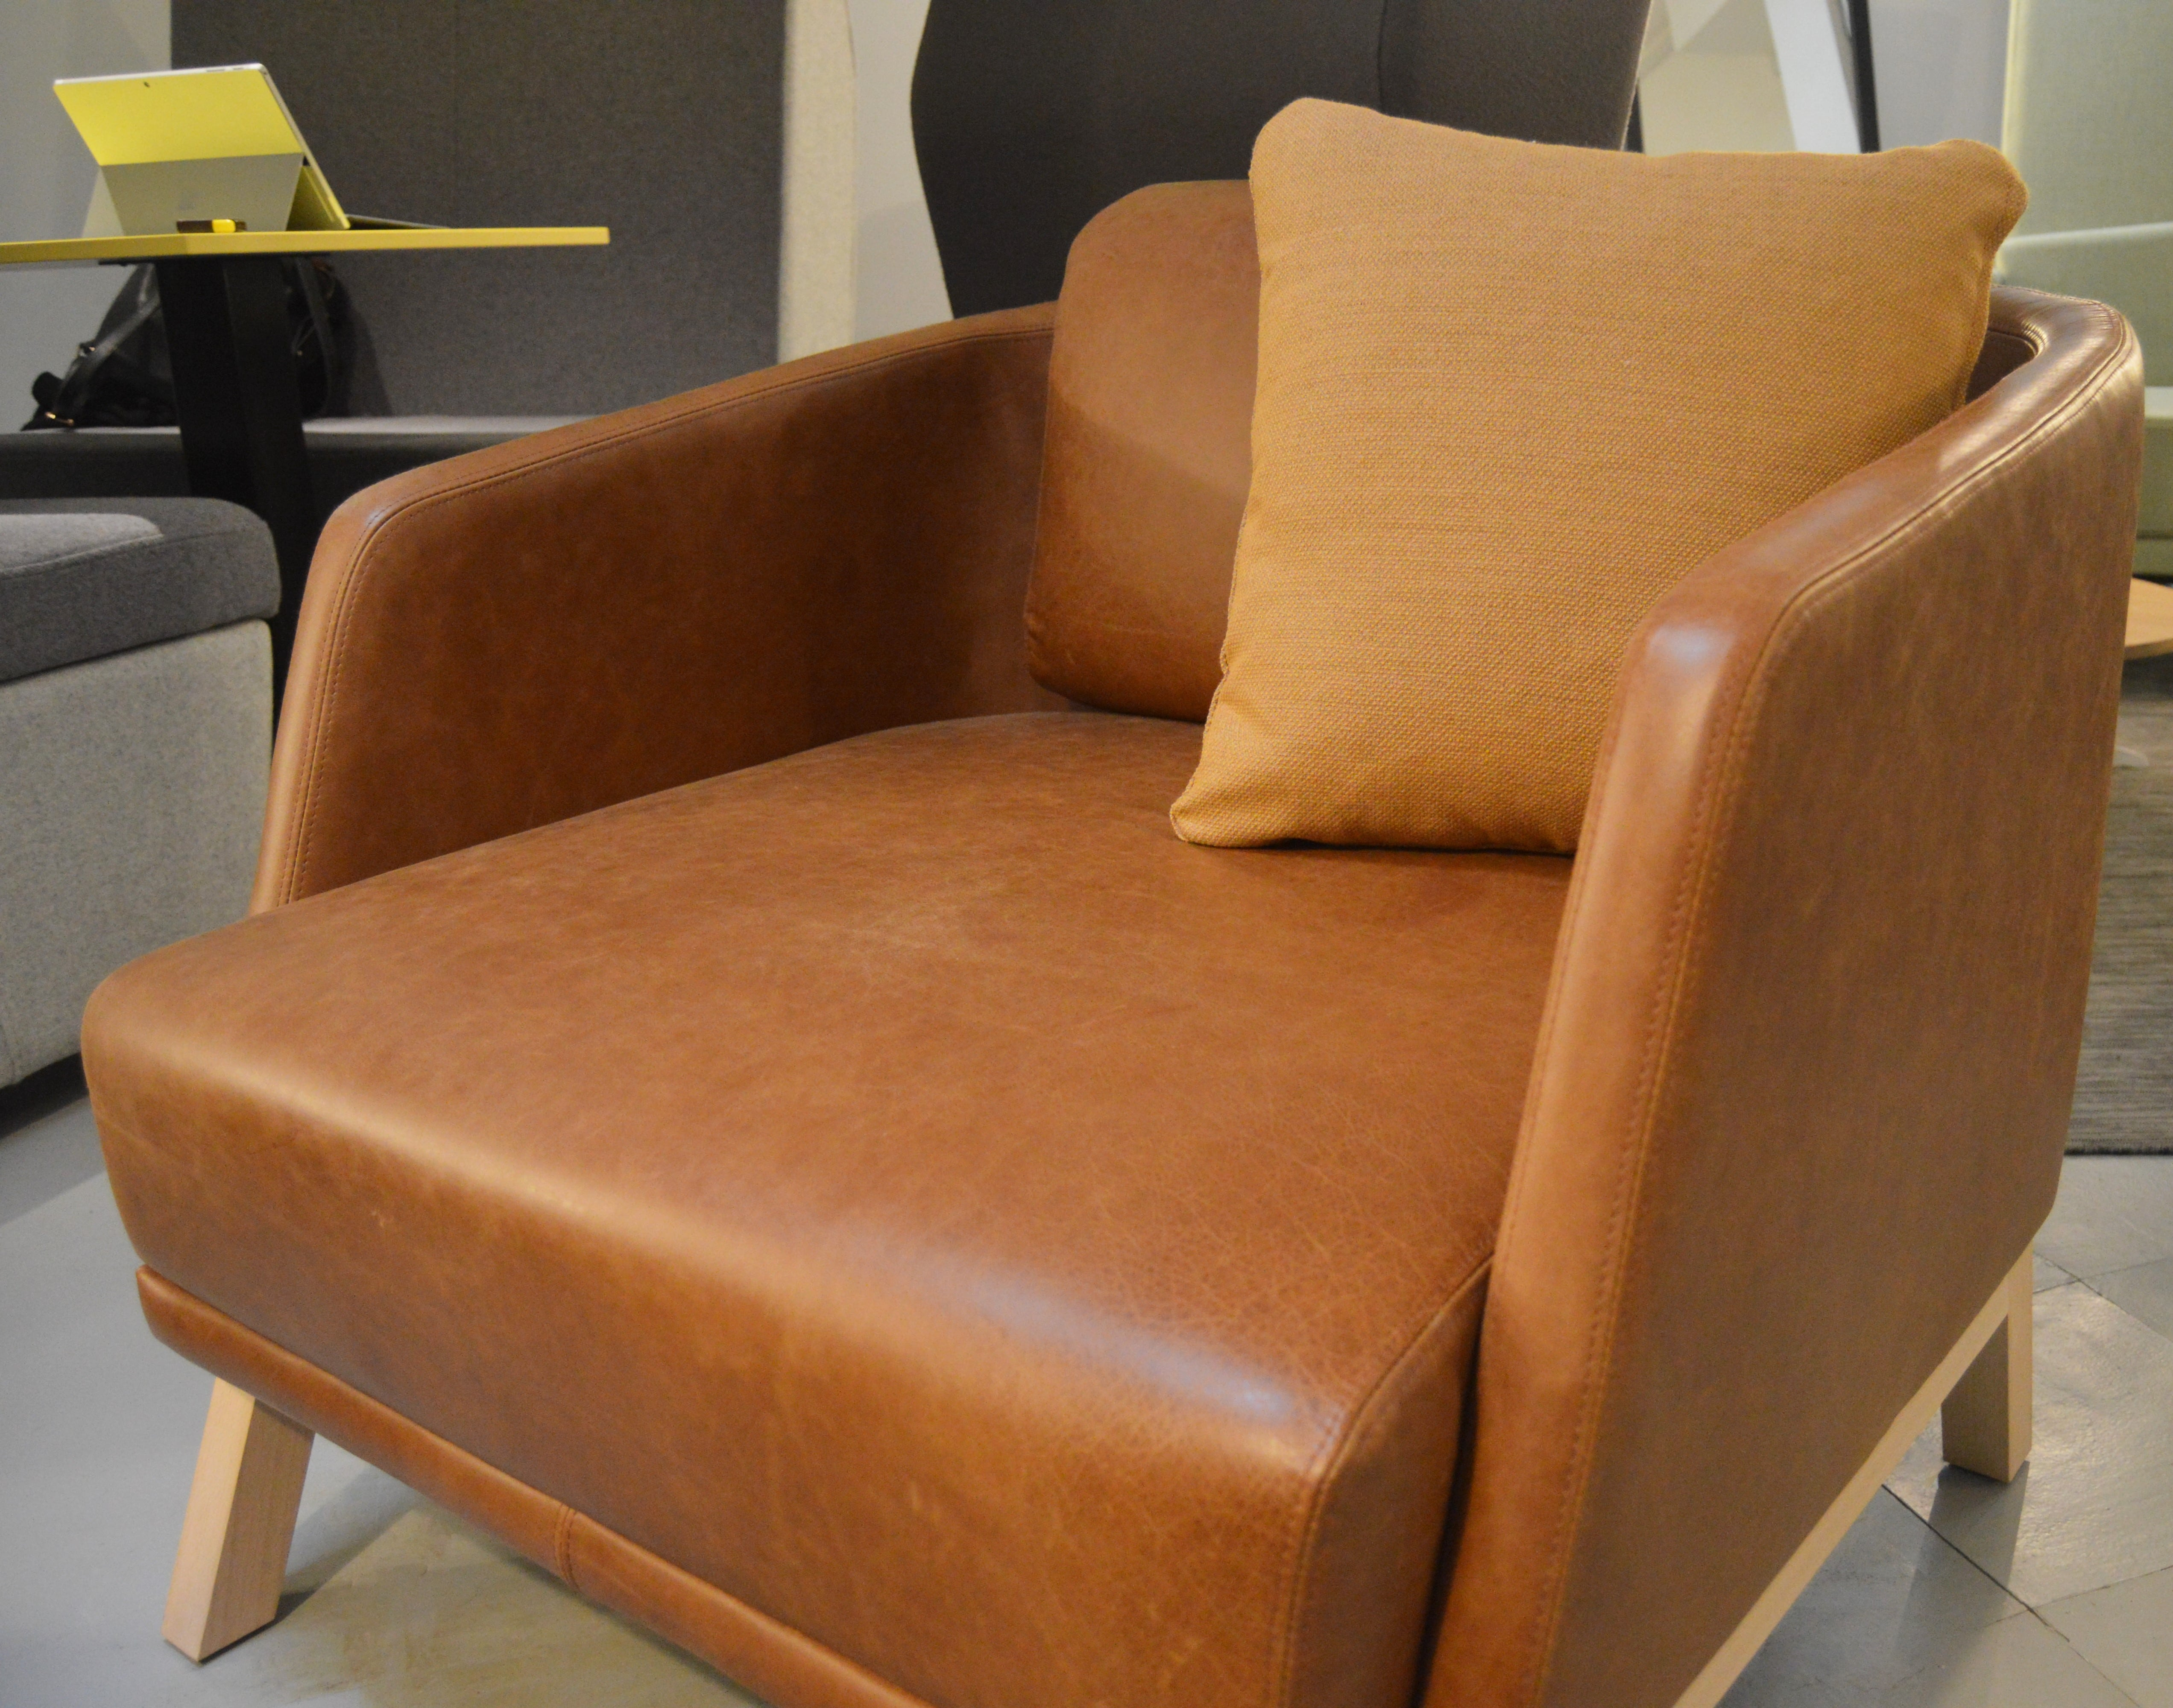 JDD_Walter Chair_Yarwood Leather_Mustang3